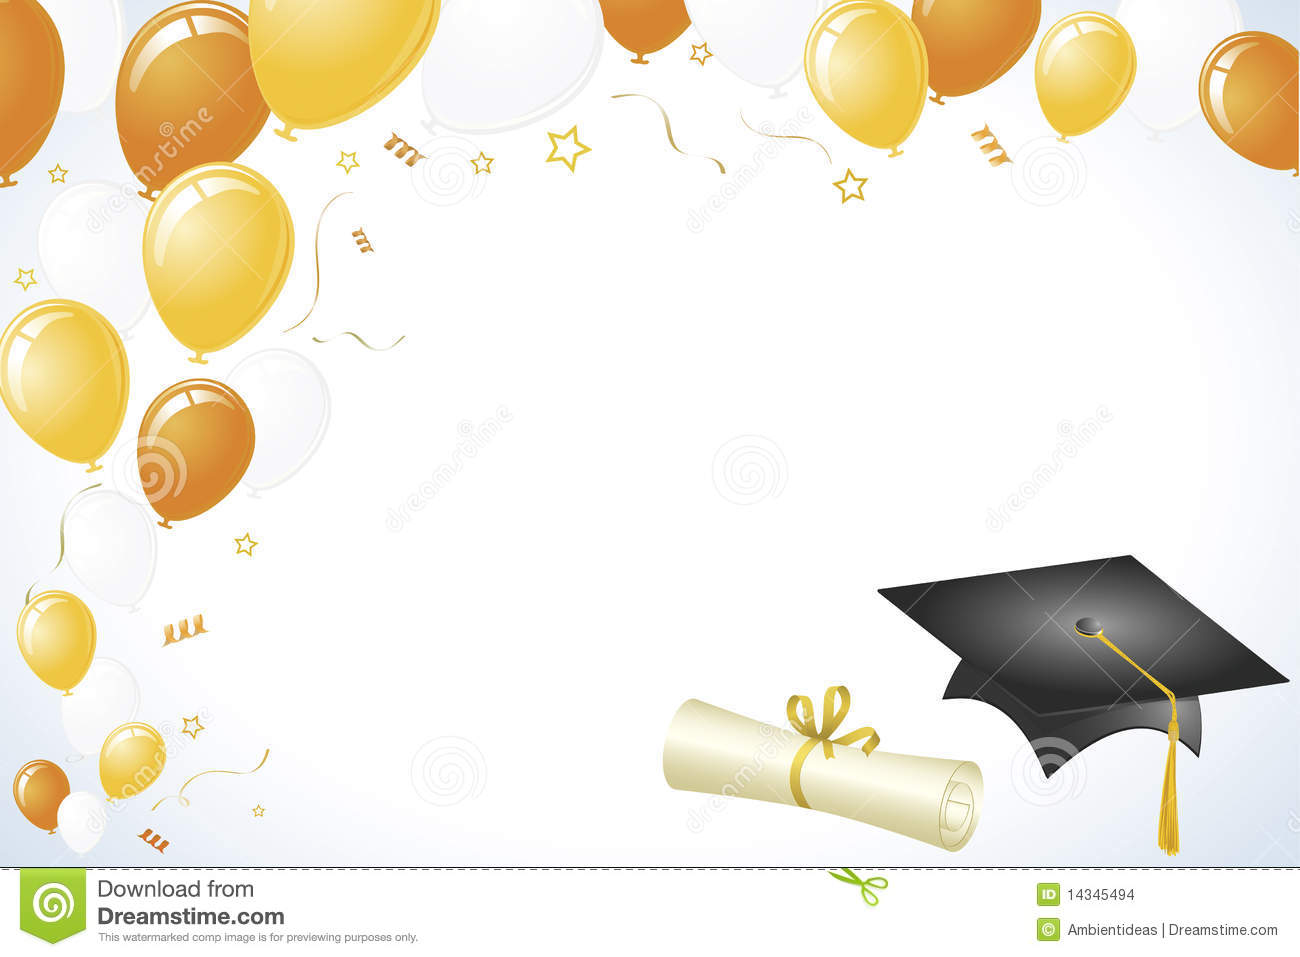 Graduation Design With Gold And Yellow Balloons Stock Images   Image